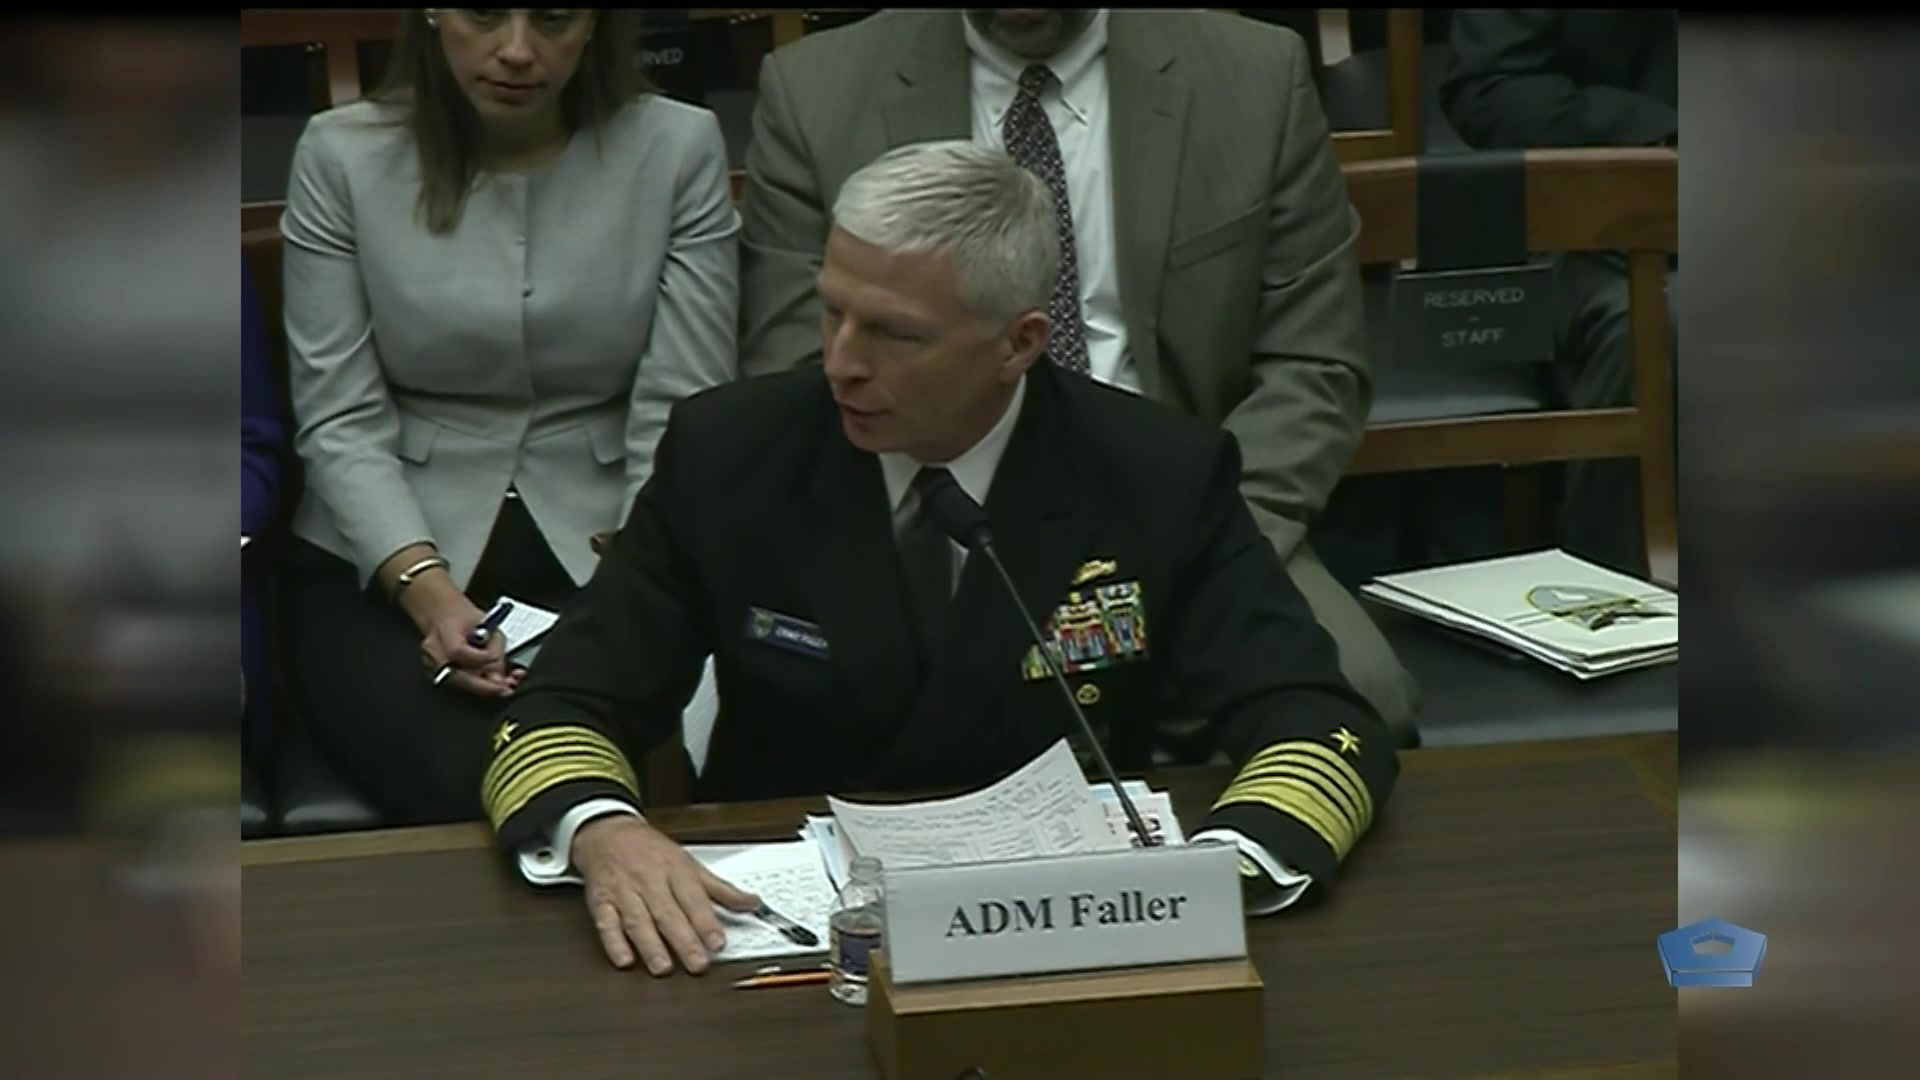 A Navy admiral sits at a table.